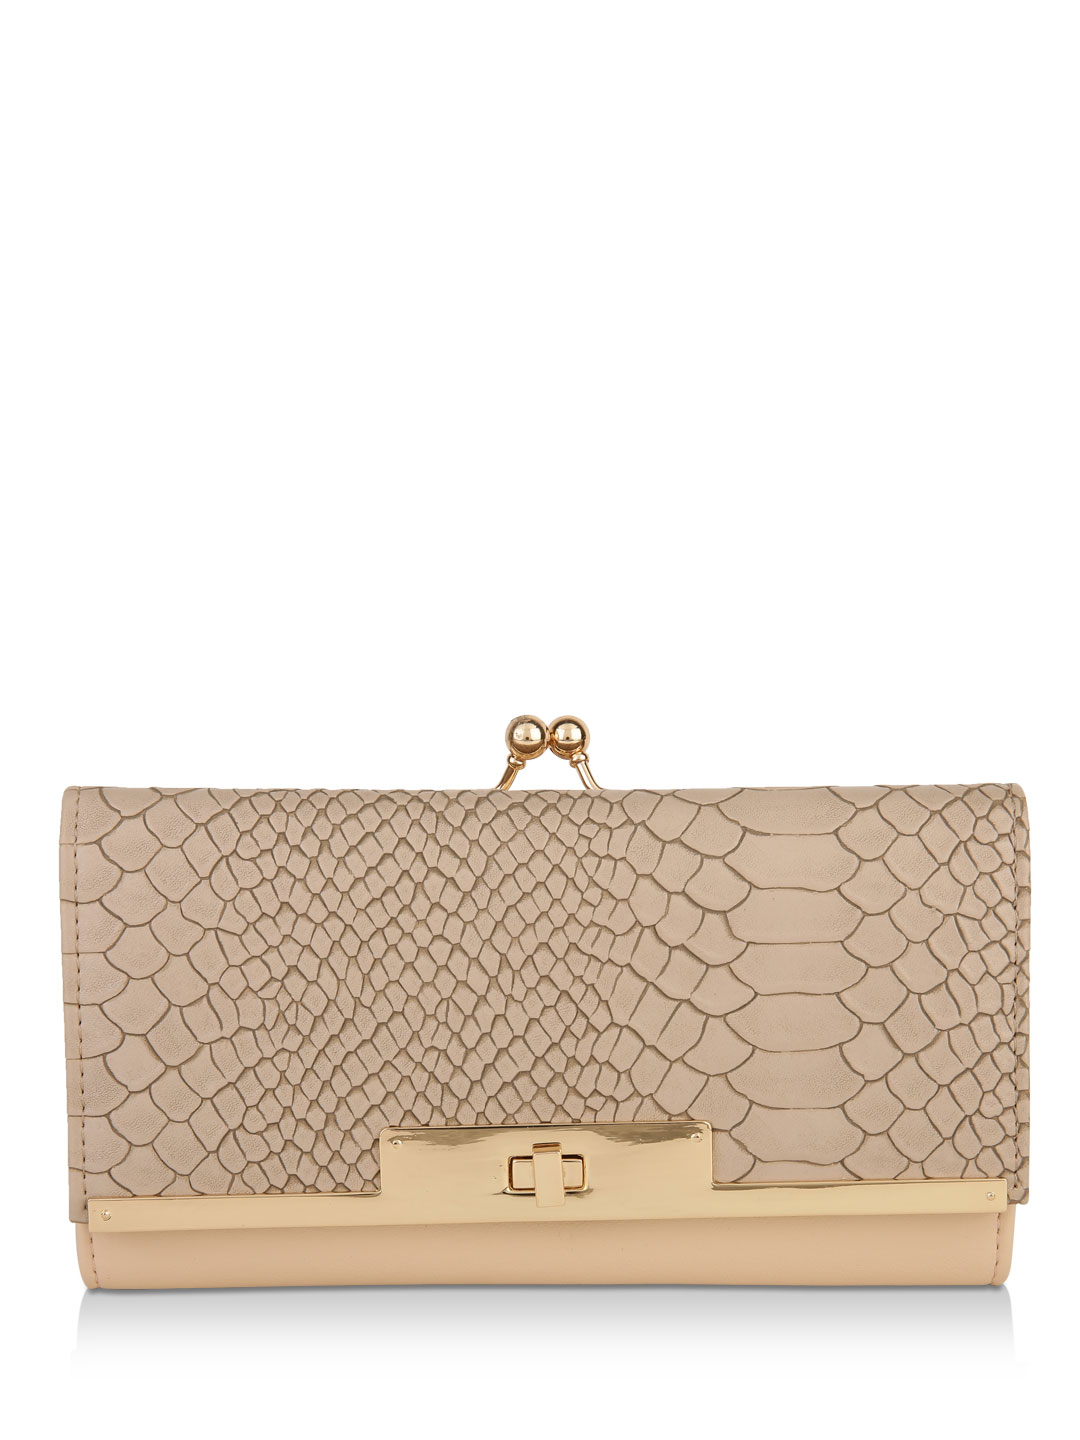 New Look Nude Snake Detail Framed Purse 1